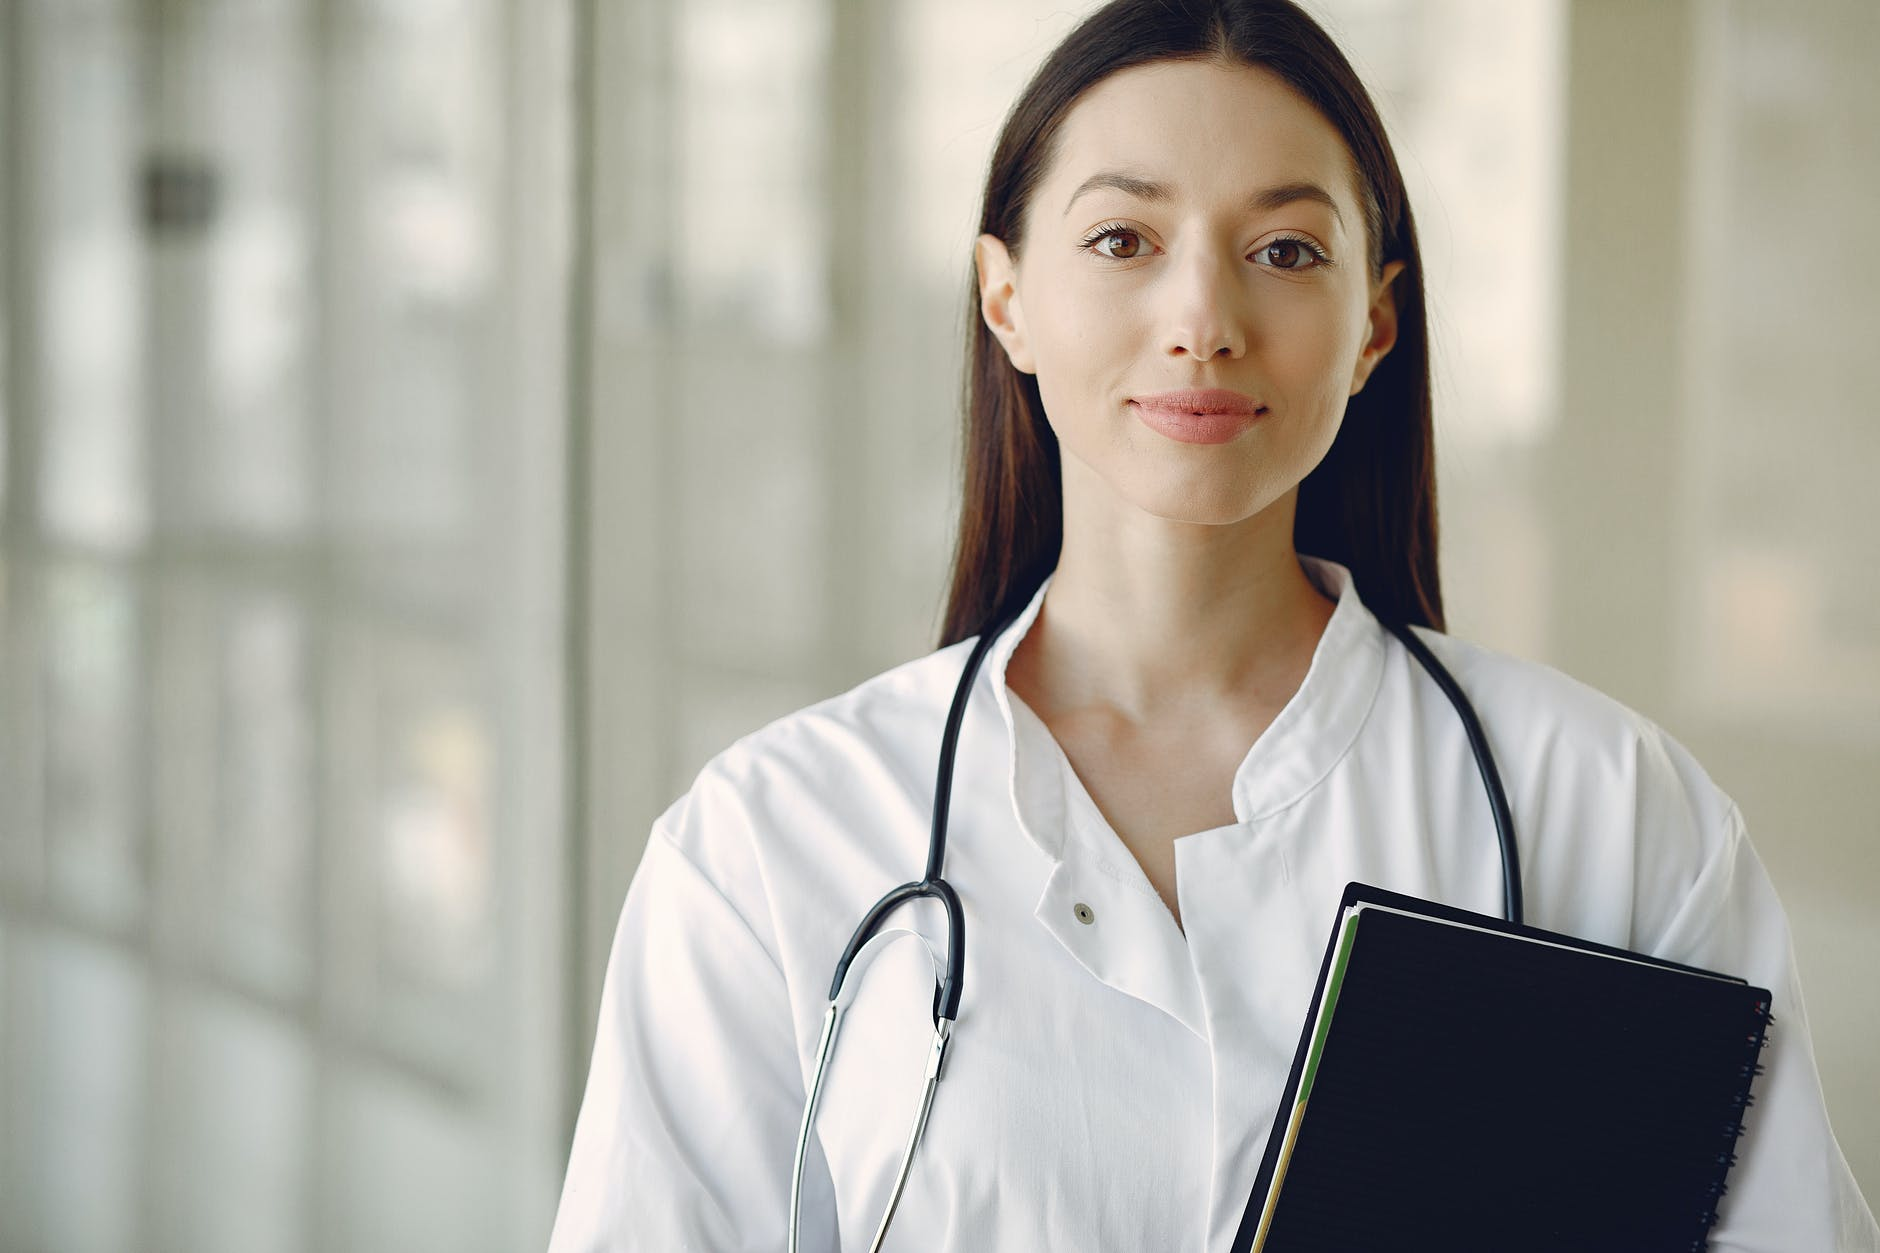 BC physician directory